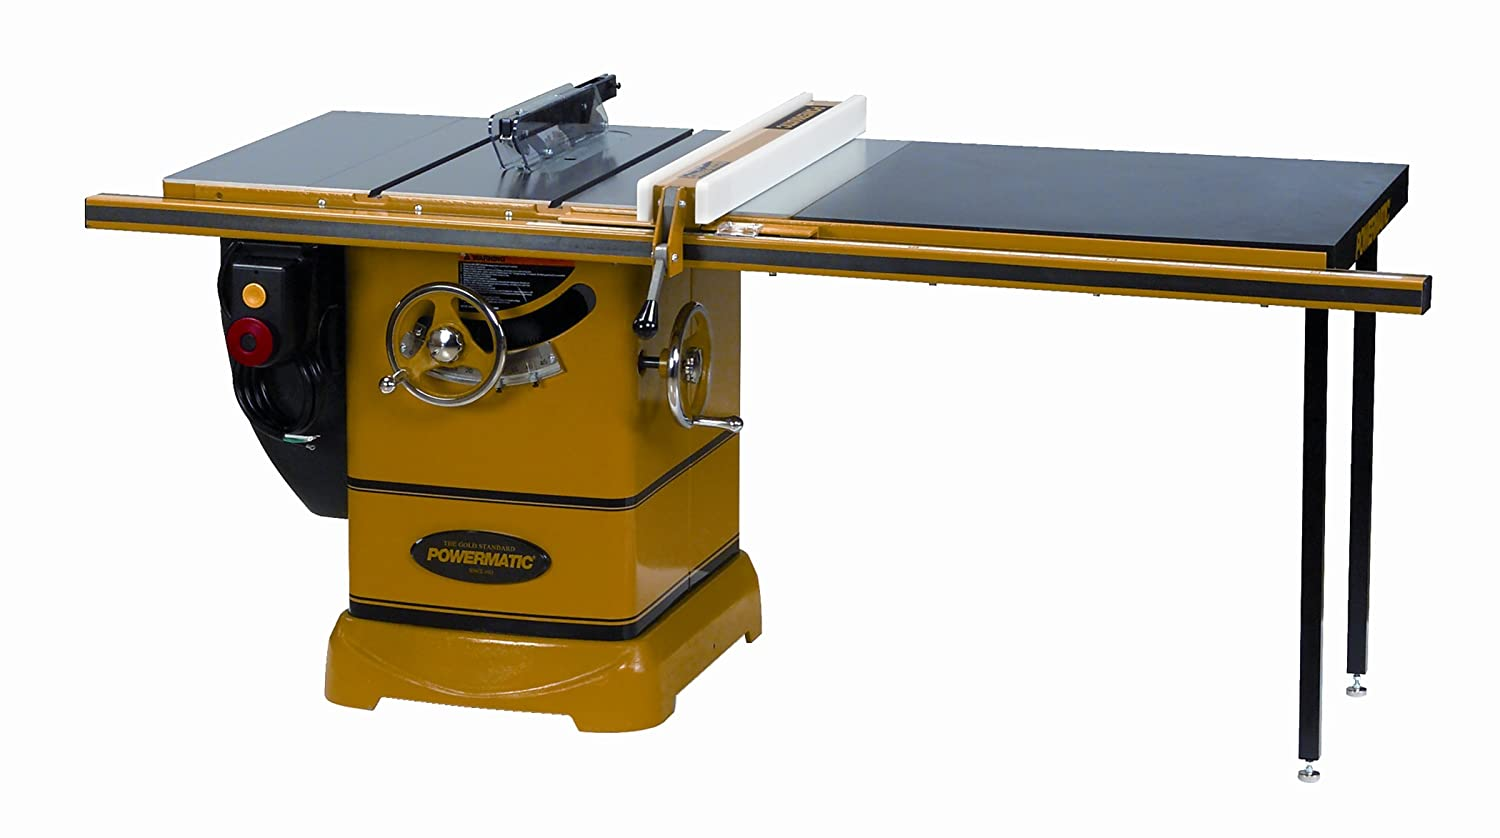 Powermatic 1792000k model pm 2000 3 horsepower cabinet saw with 50 powermatic 1792000k model pm 2000 3 horsepower cabinet saw with 50 inch accu fence 2 cast iron extension wings table board and legs 230 volt 1 phase greentooth Images